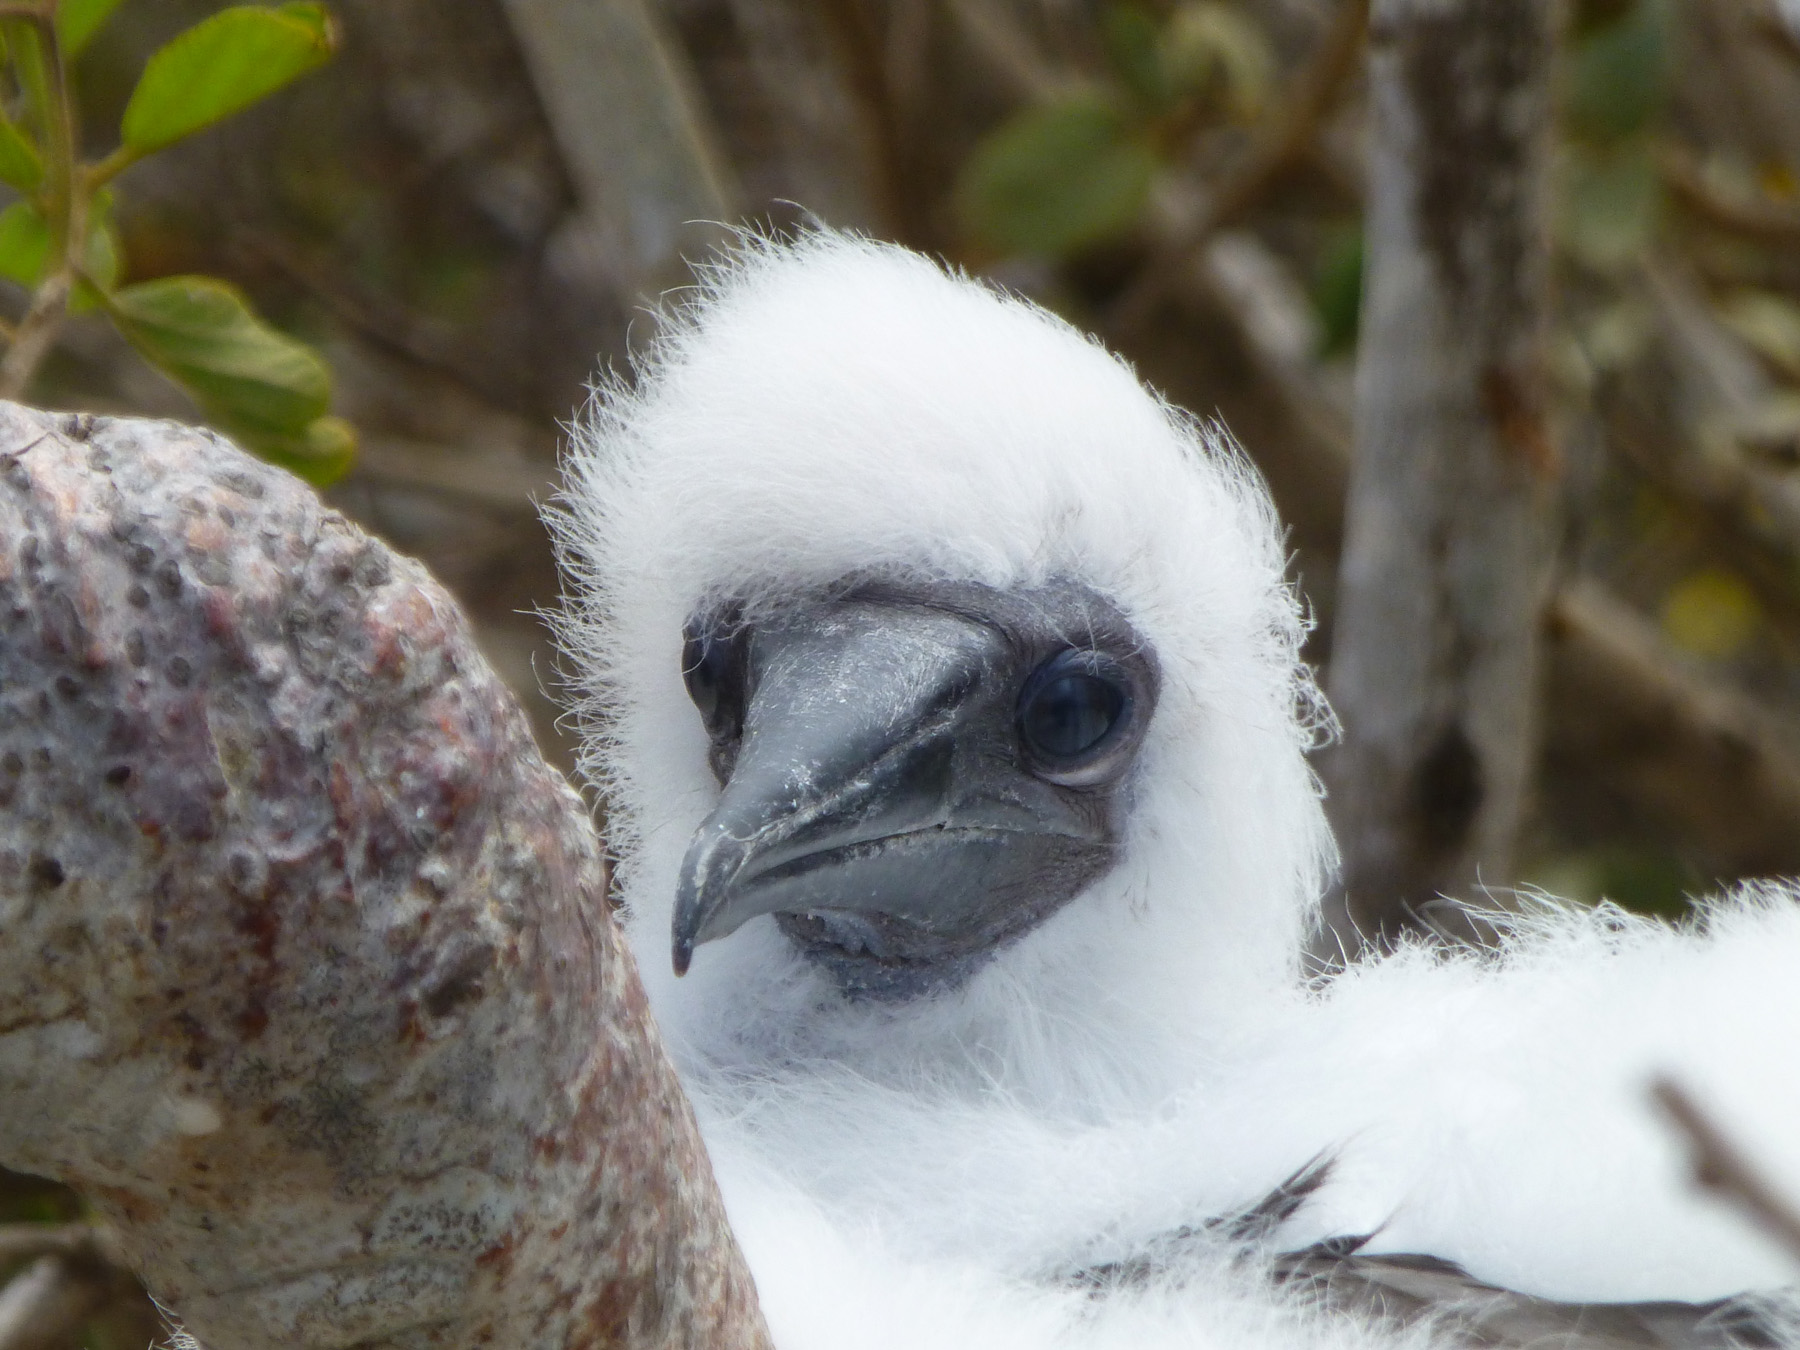 A Fledgling Red-footed Booby